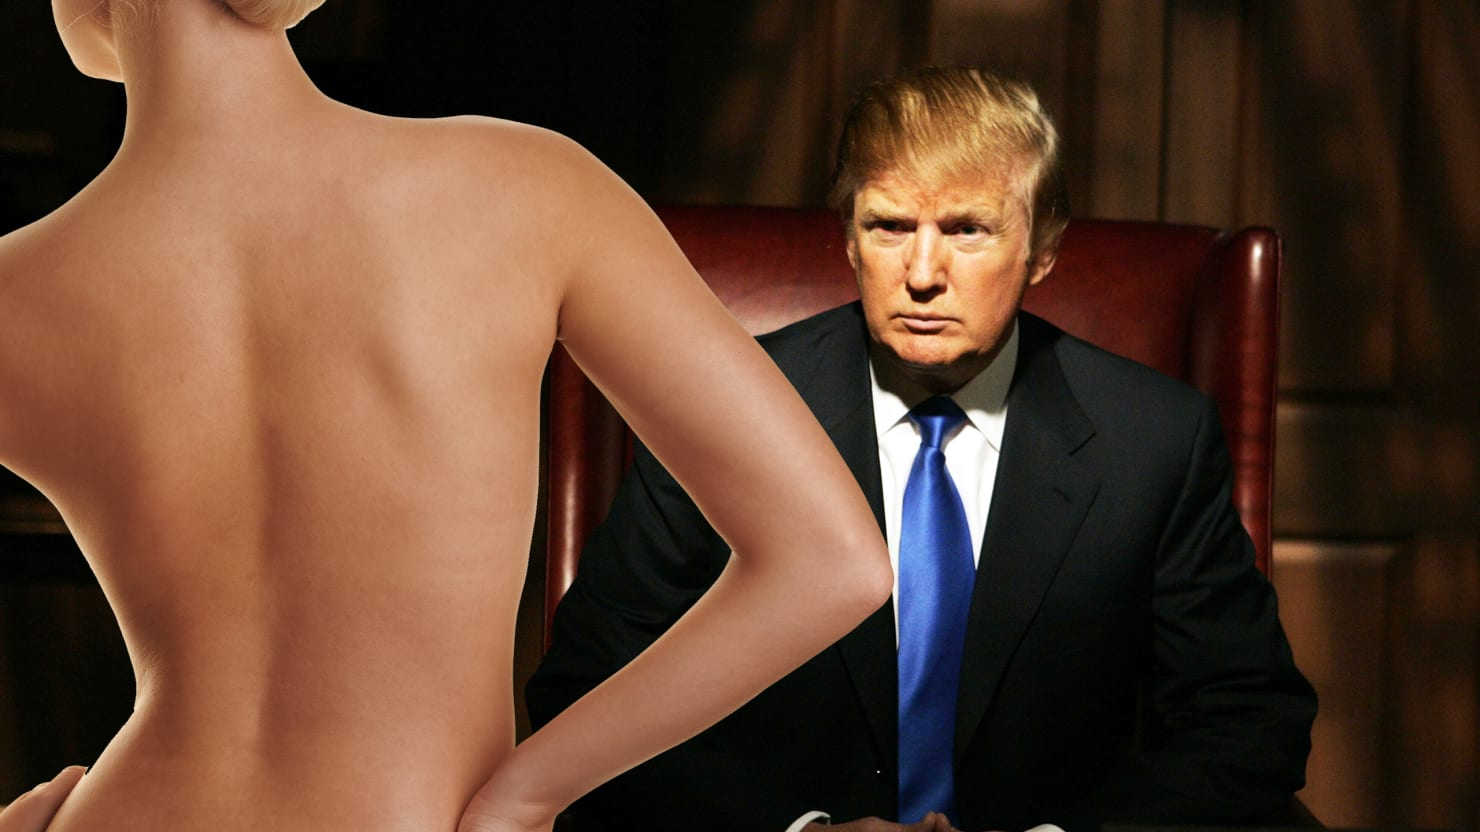 Donald Trump's 'Apprentices' Had to Agree to Go Nude